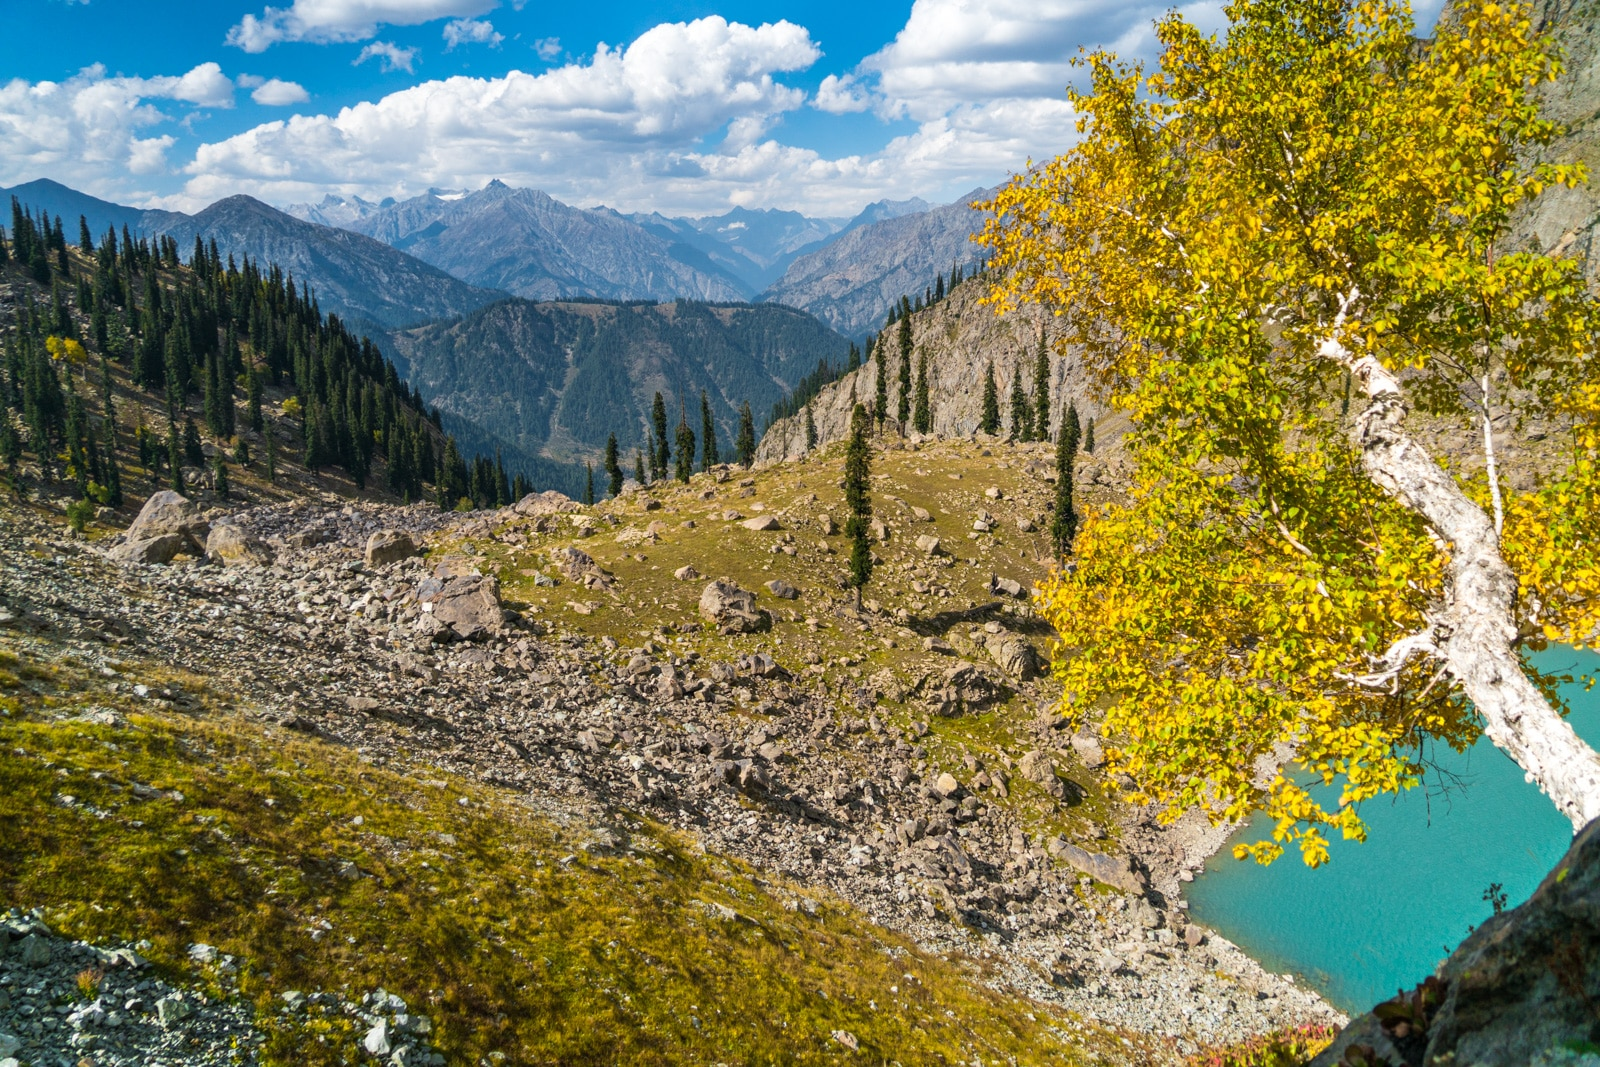 View of Spin Khwar lake while trekking near Kalam, Swat Valley, Khyber Pakhtunkhwa, Pakistan